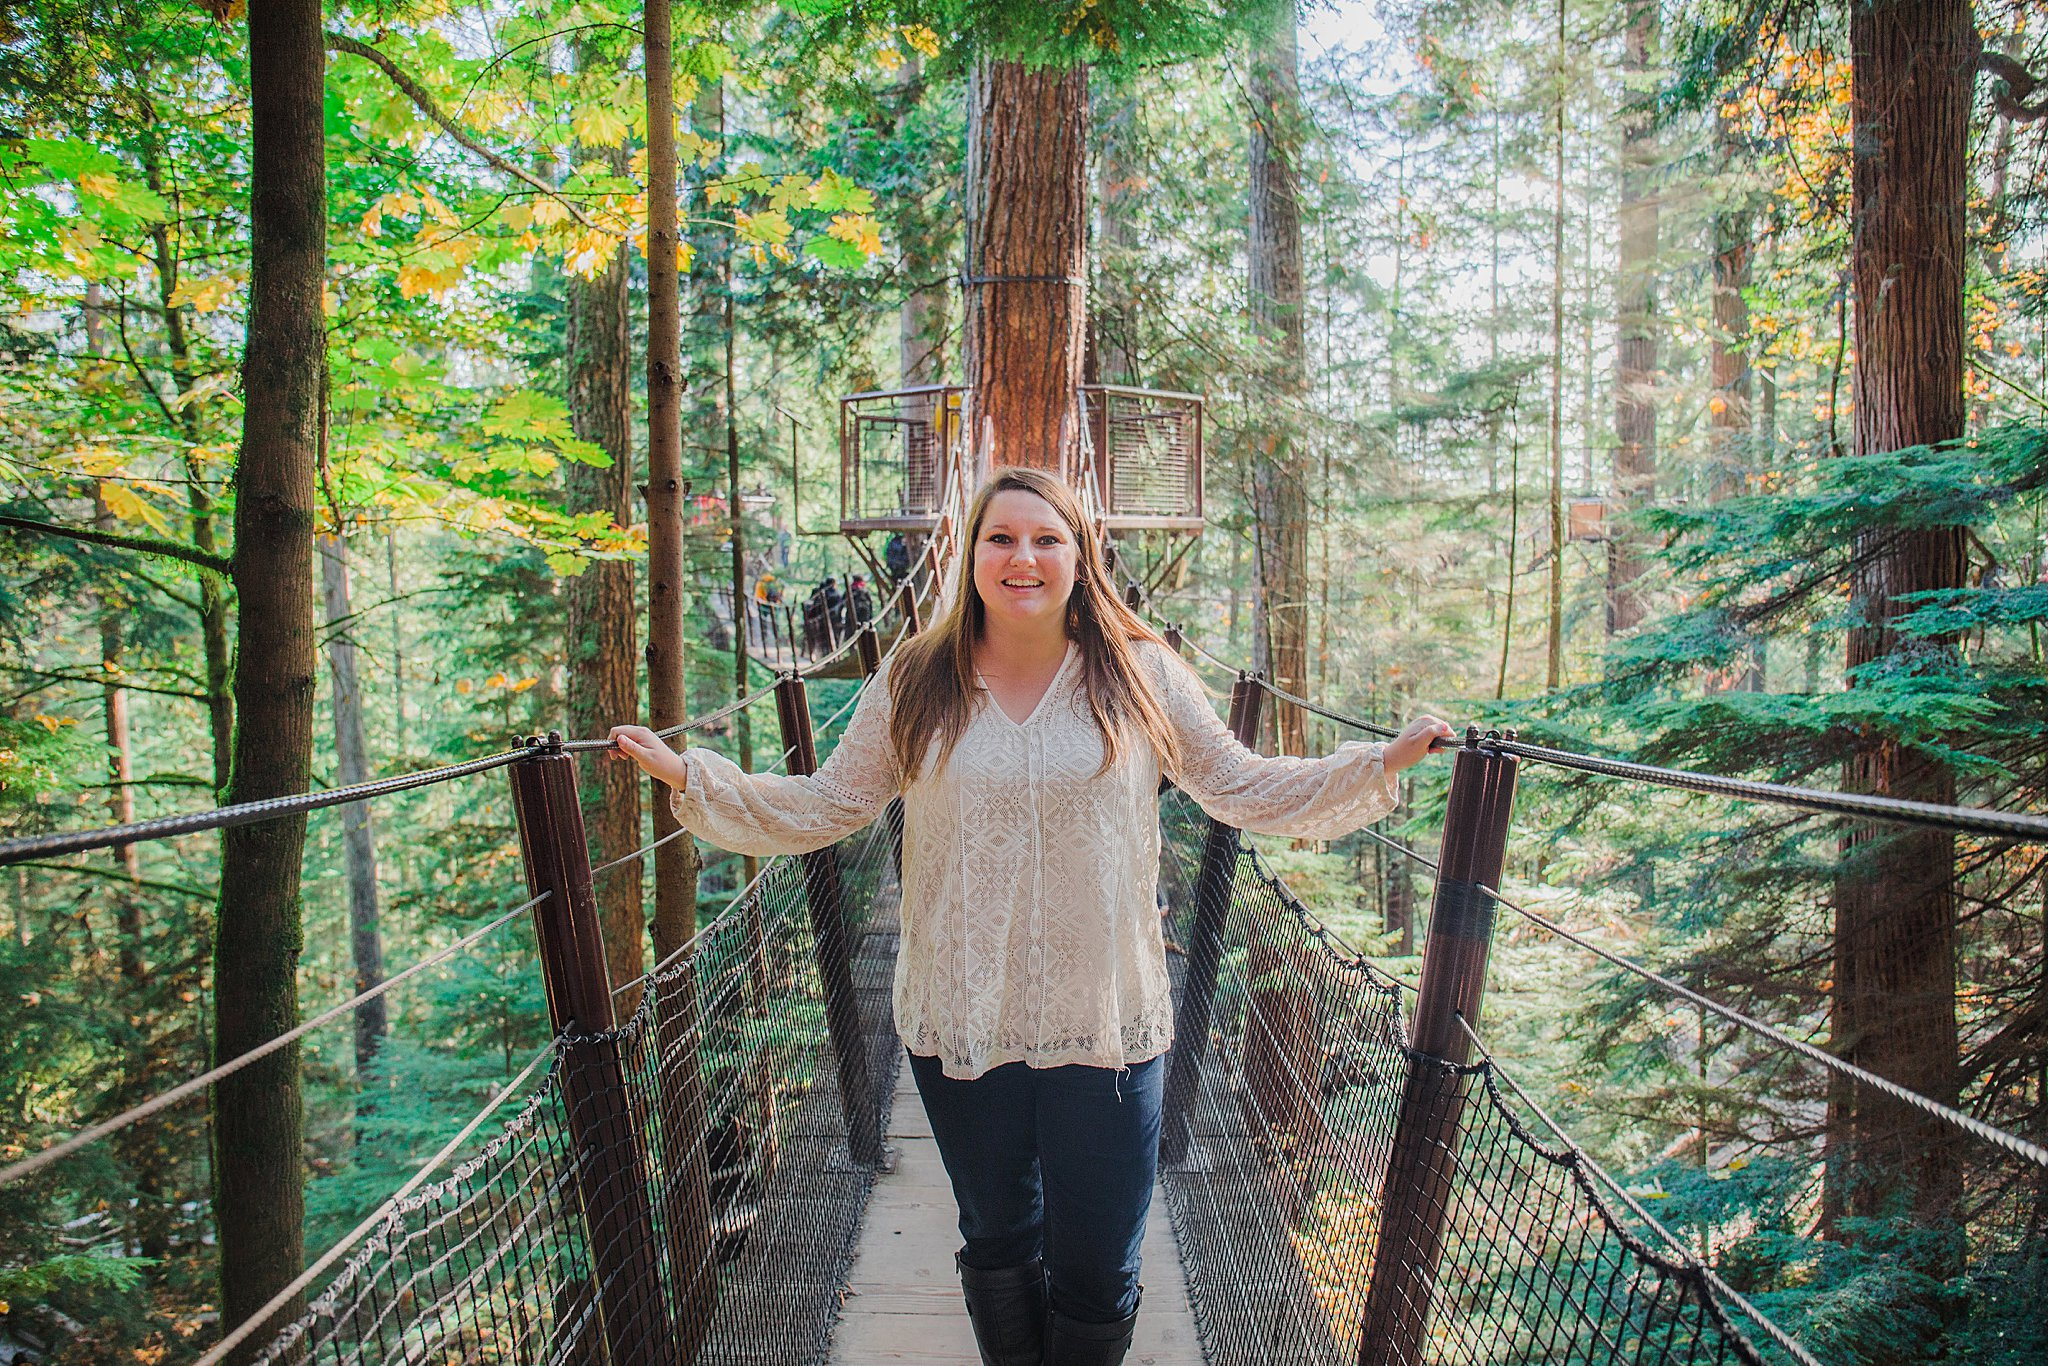 capilano suspension bridge, vancouver, things to do in vancouver, suspension bridge, cliffwalk, treetops adventure, visit british columbia, canada